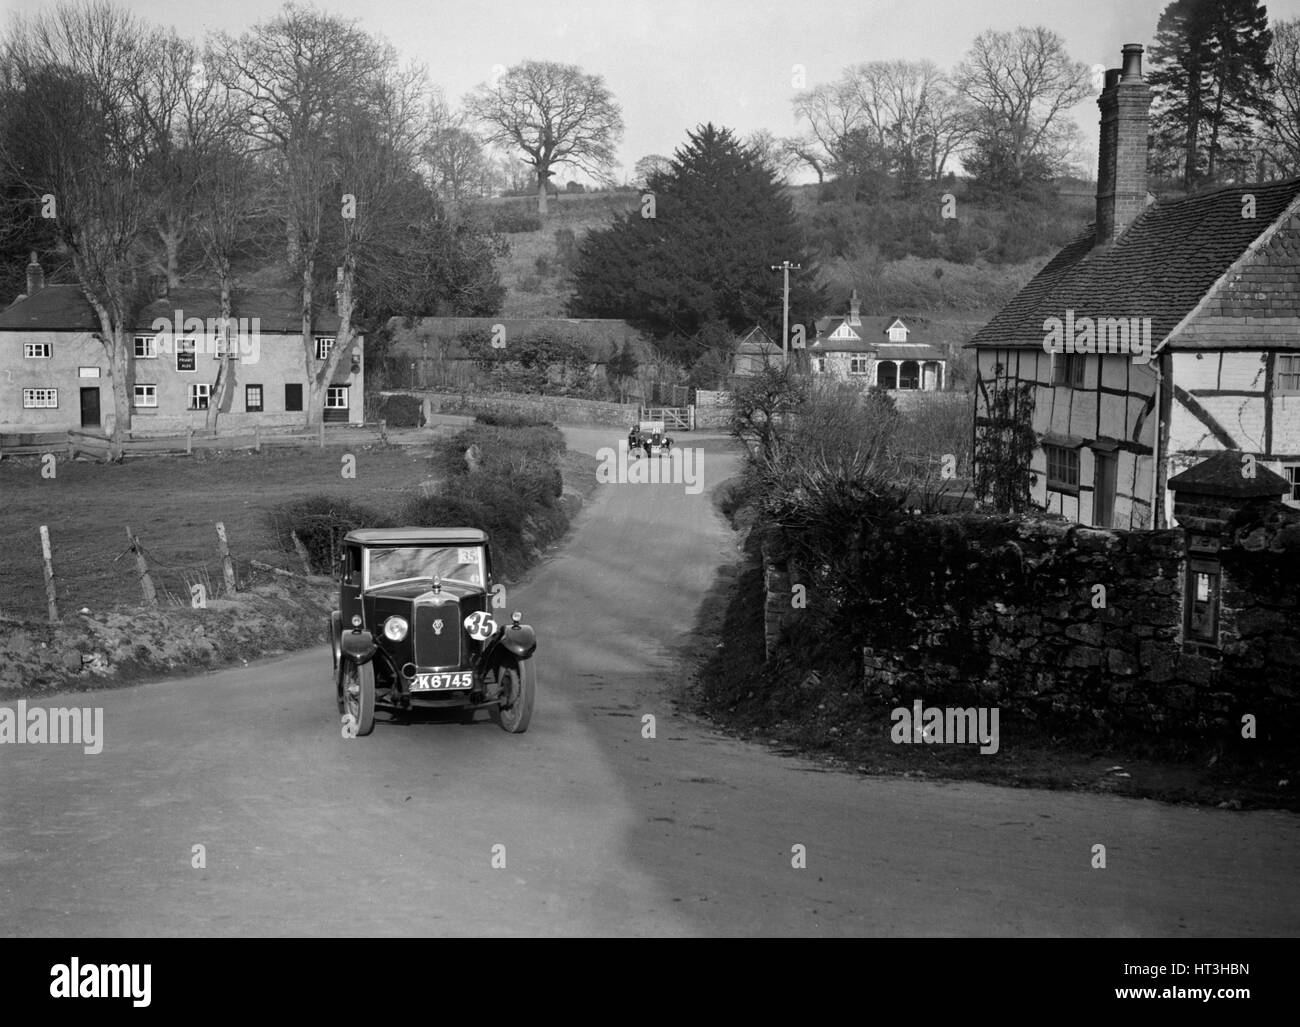 1929 1089 cc Riley competing in the JCC Inter-Centre Rally, Sutton, Surrey, 1932. Artist: Bill Brunell. - Stock Image